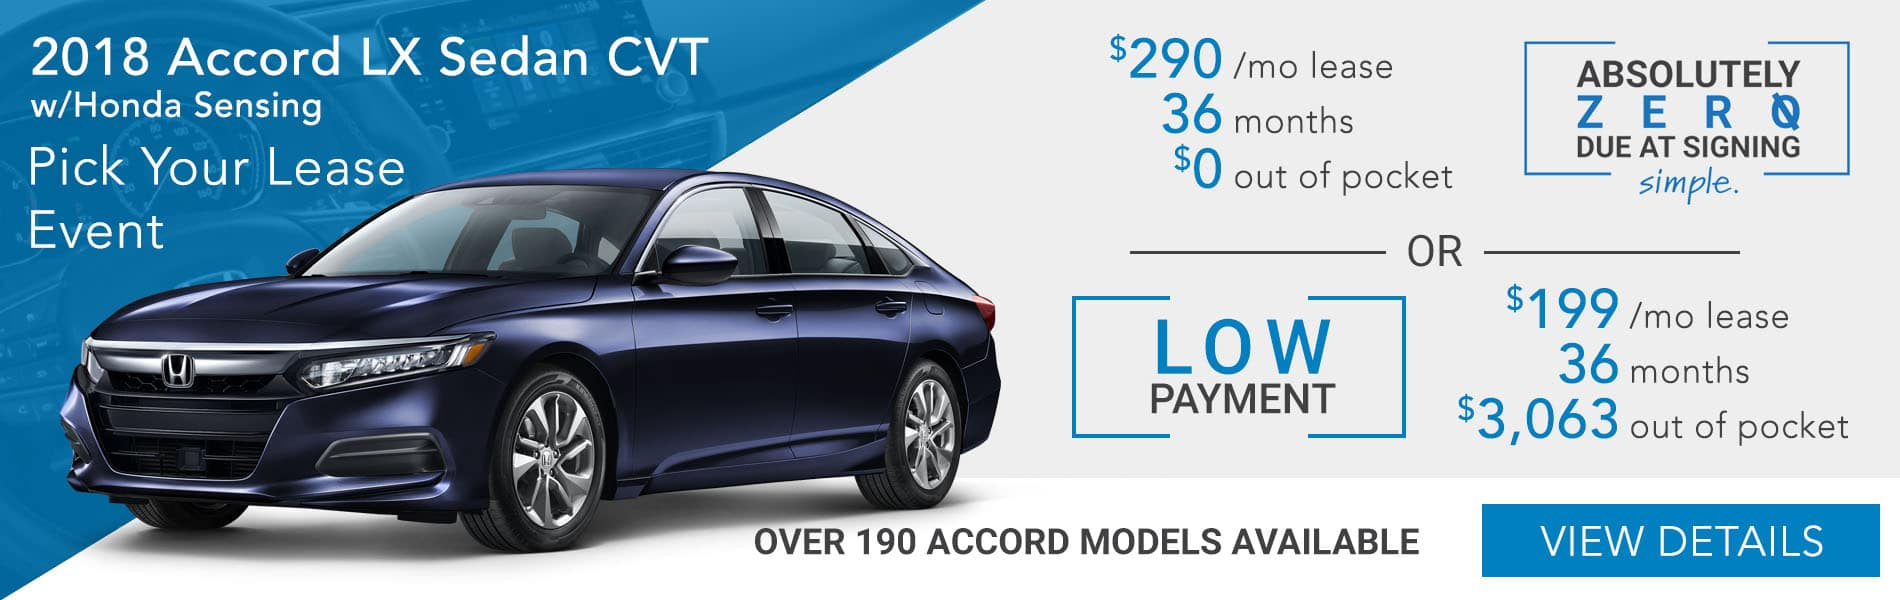 Pick your lease event. 2018 Accord LX Sedan CVT choose absolutely zero out of pocket lease at $290 per month or choose the low payment option at $190 per month with $3,063 out of pocket.